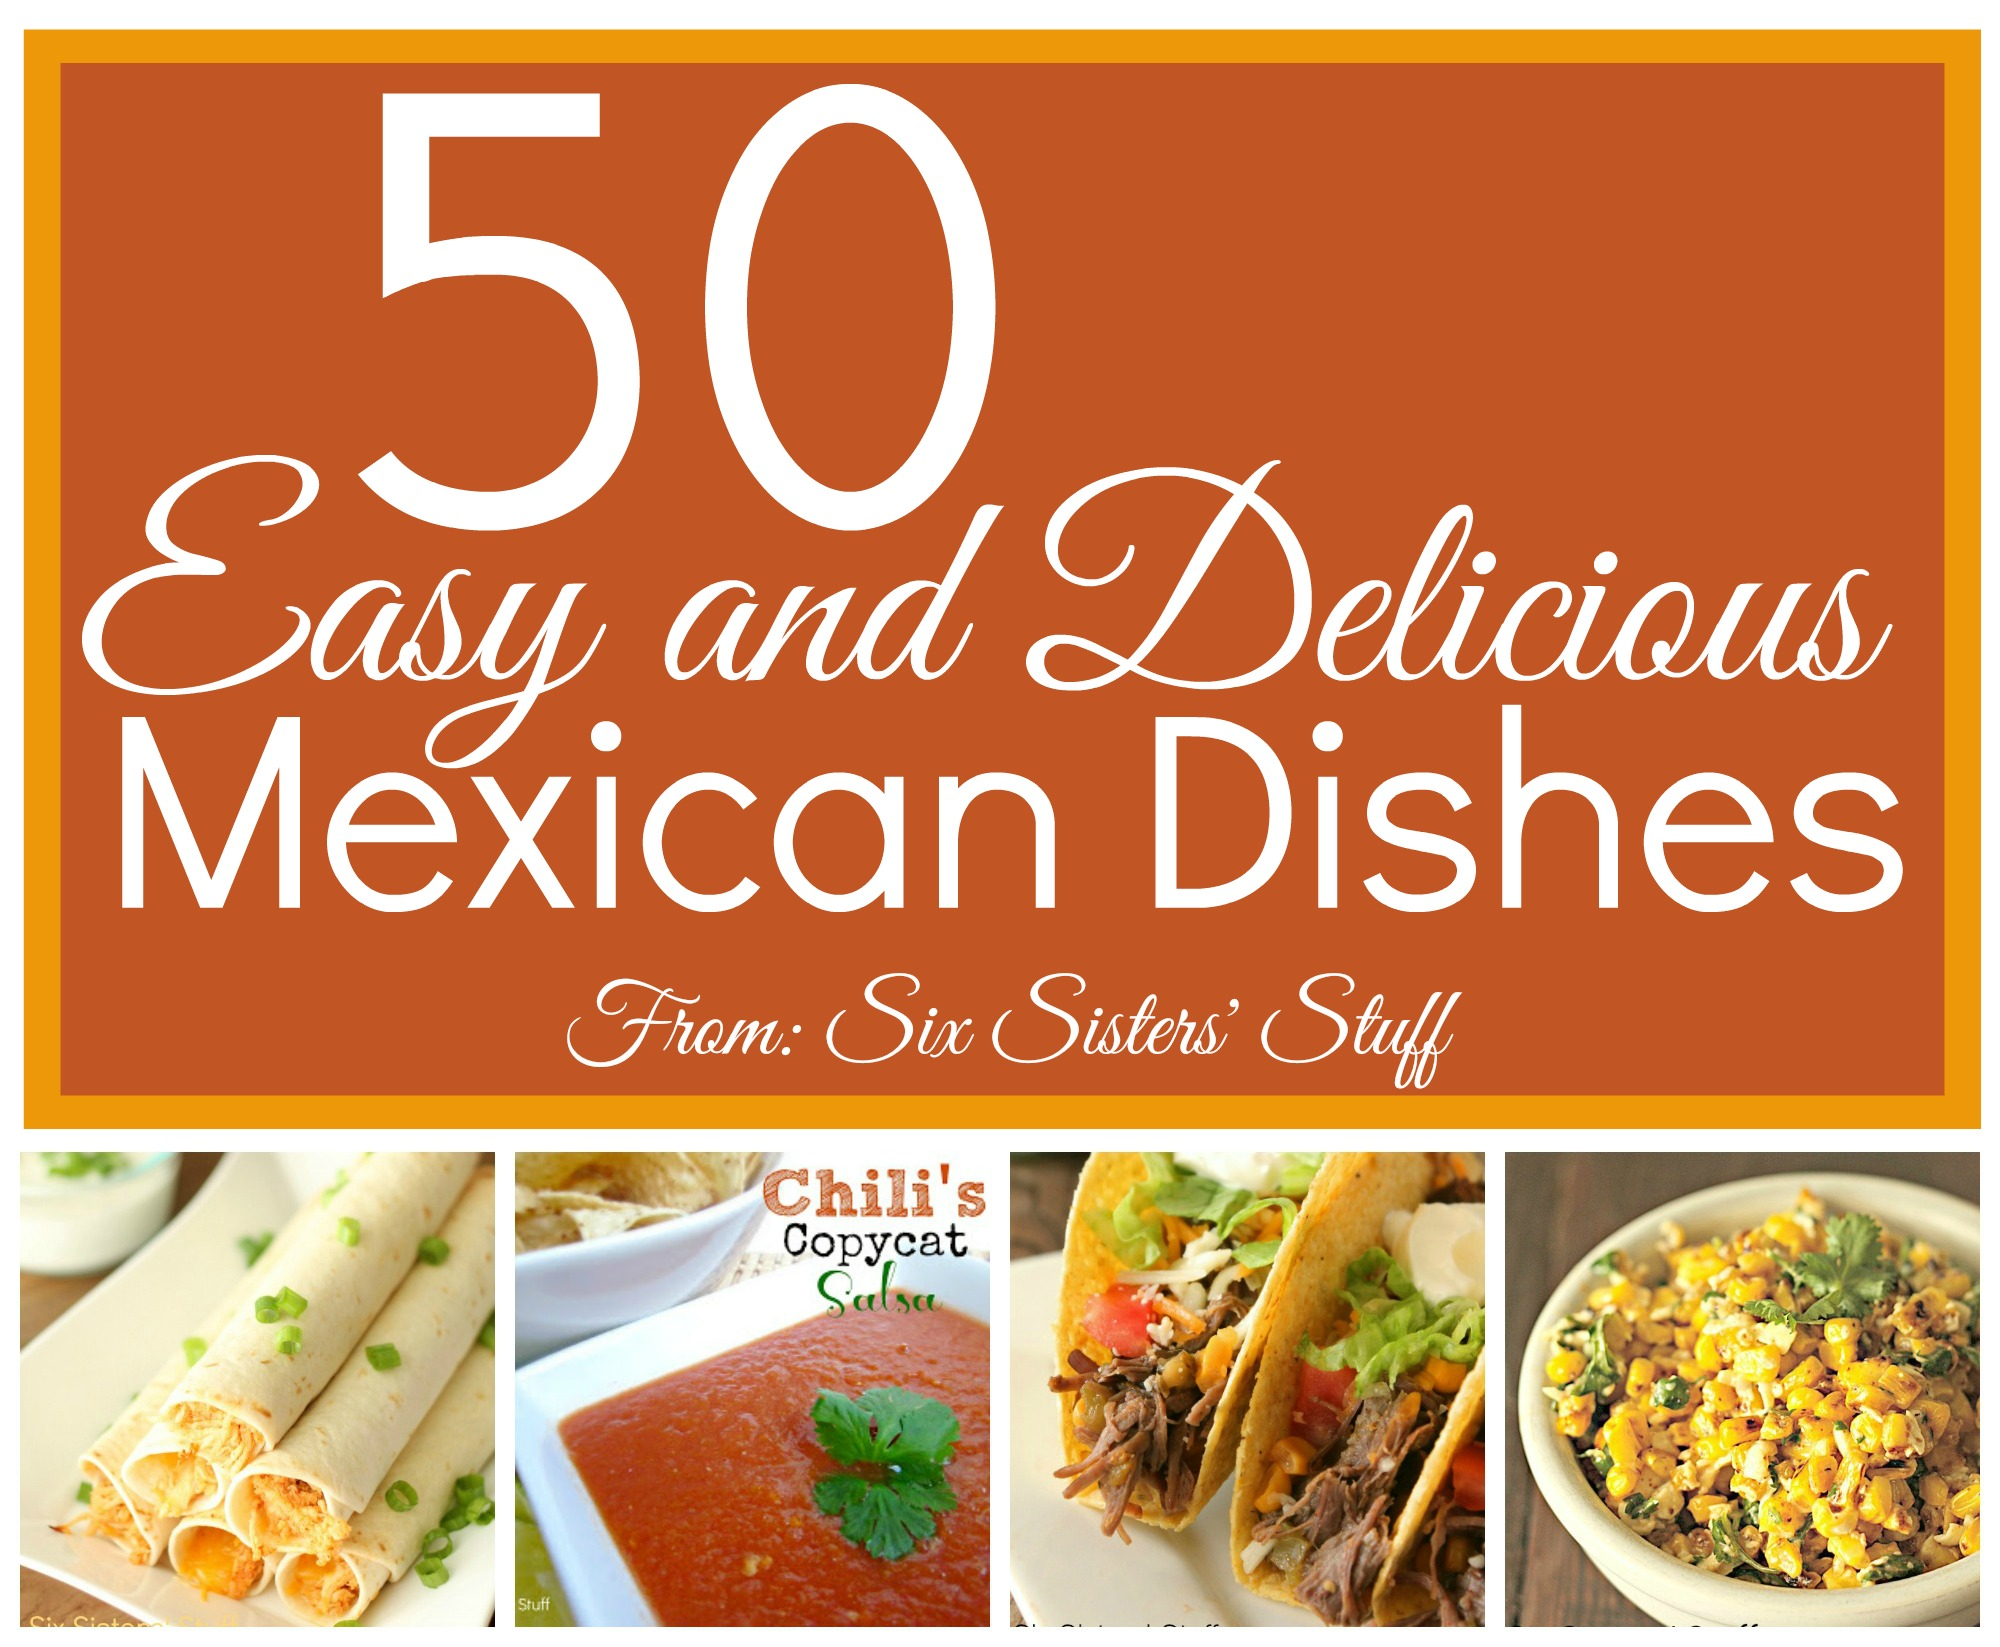 50 Easy and Delicious Mexican Dishes